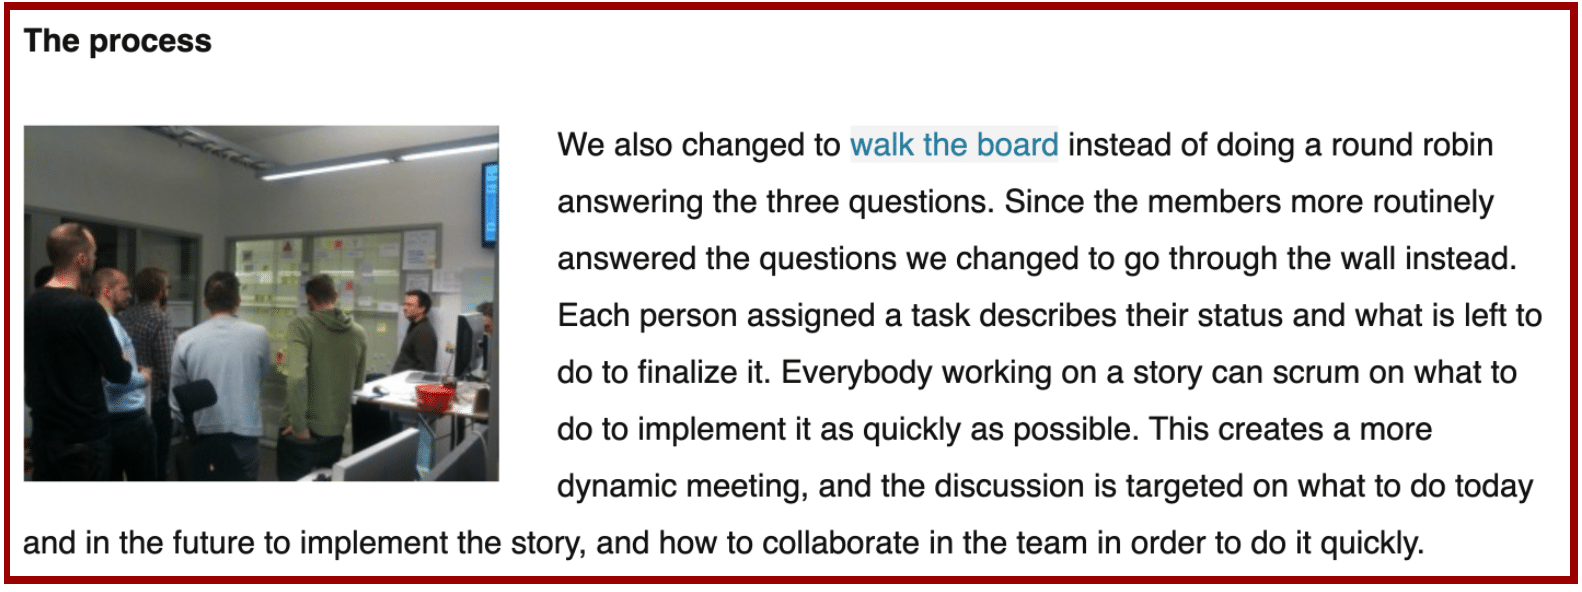 The process: We also changed to walk the board instead of doing a round robin and answering the three questions.